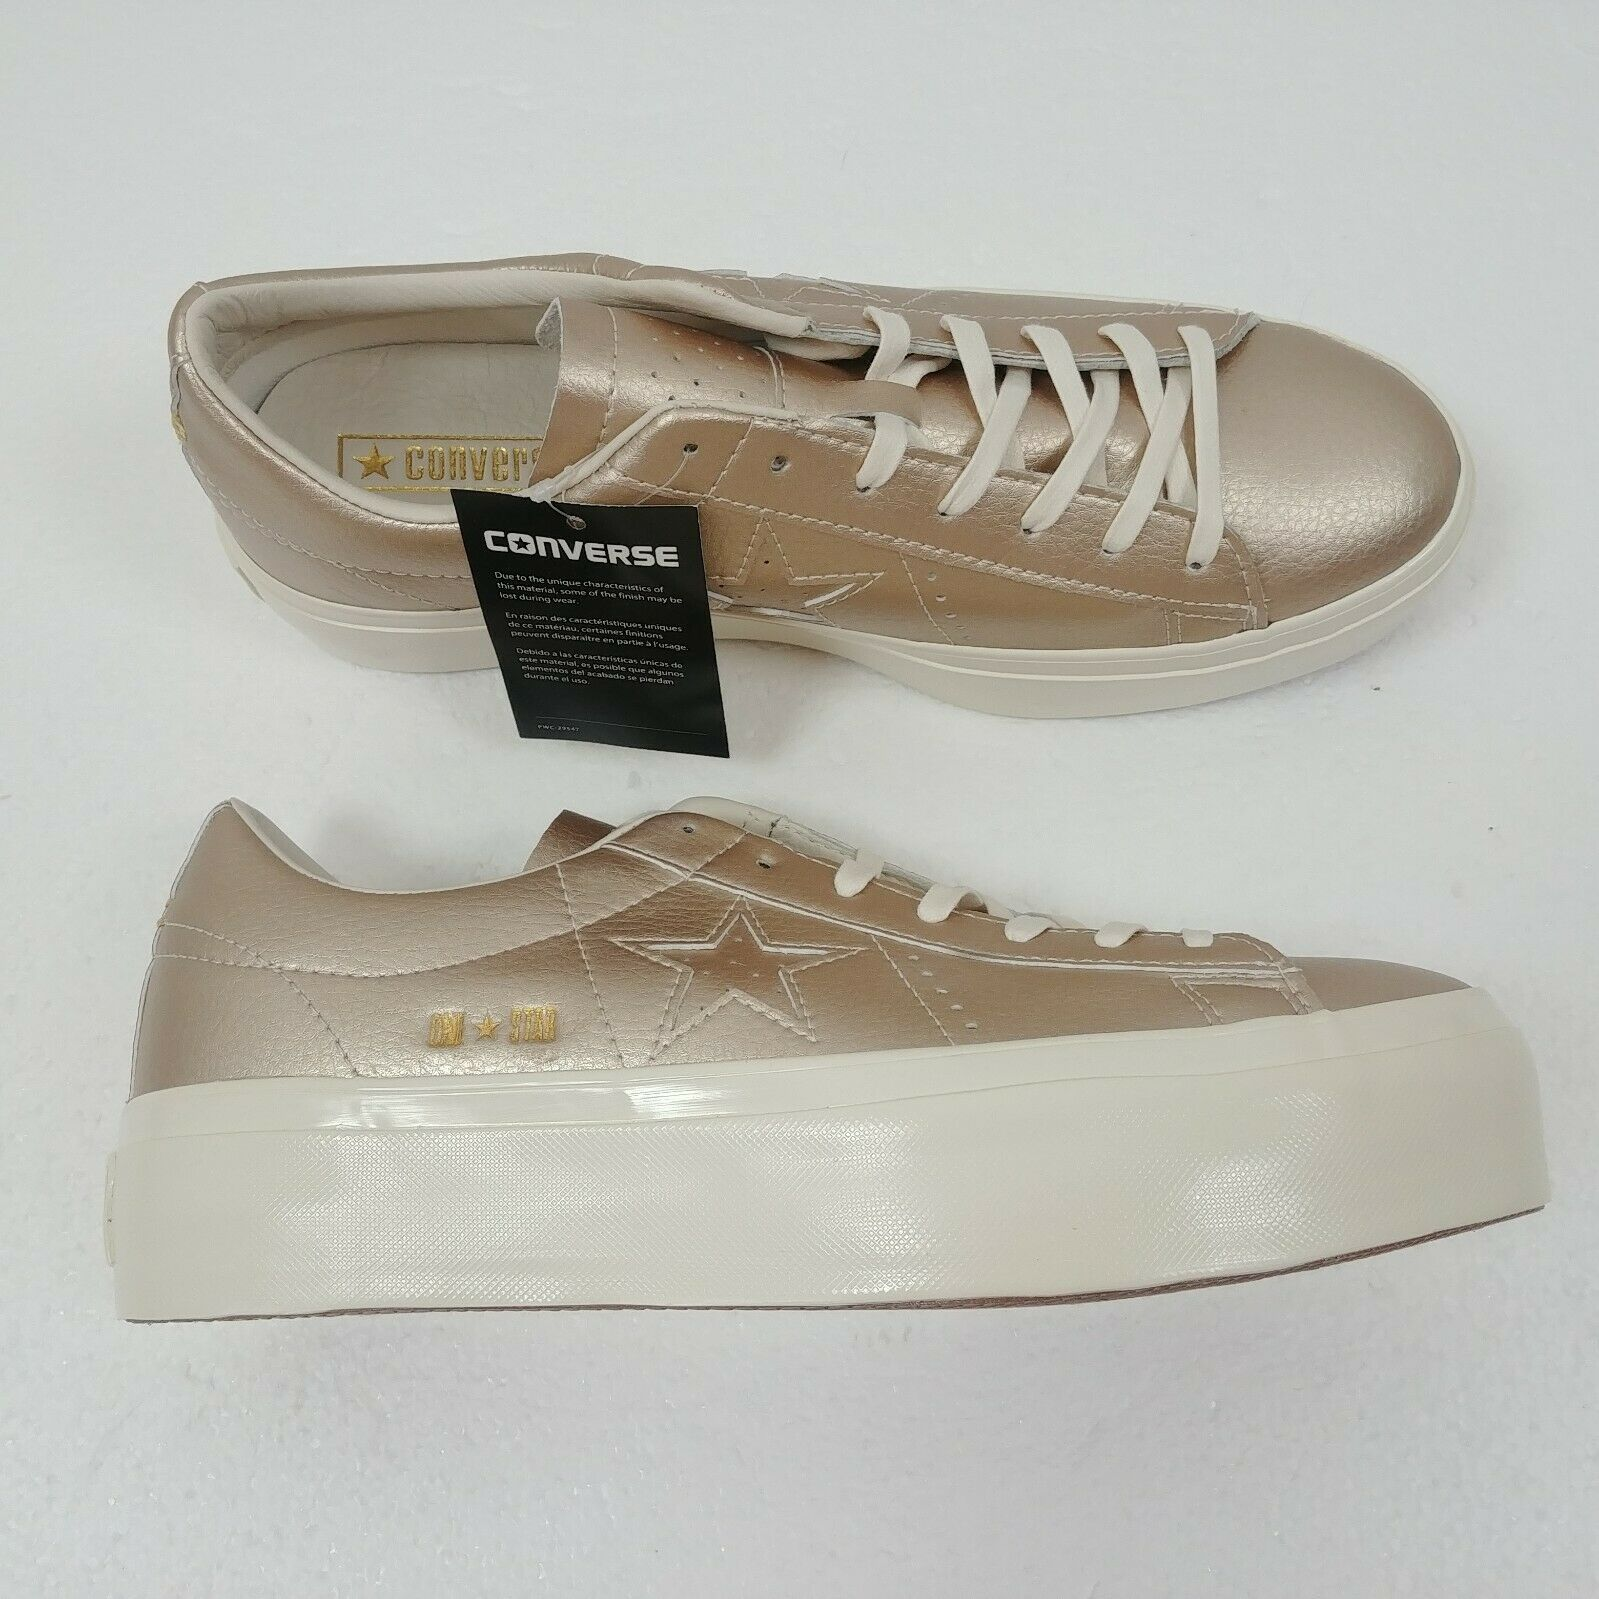 Converse One Star Platform Ox Low Top Shoes Gold 559924C Womens Size 10 NWT